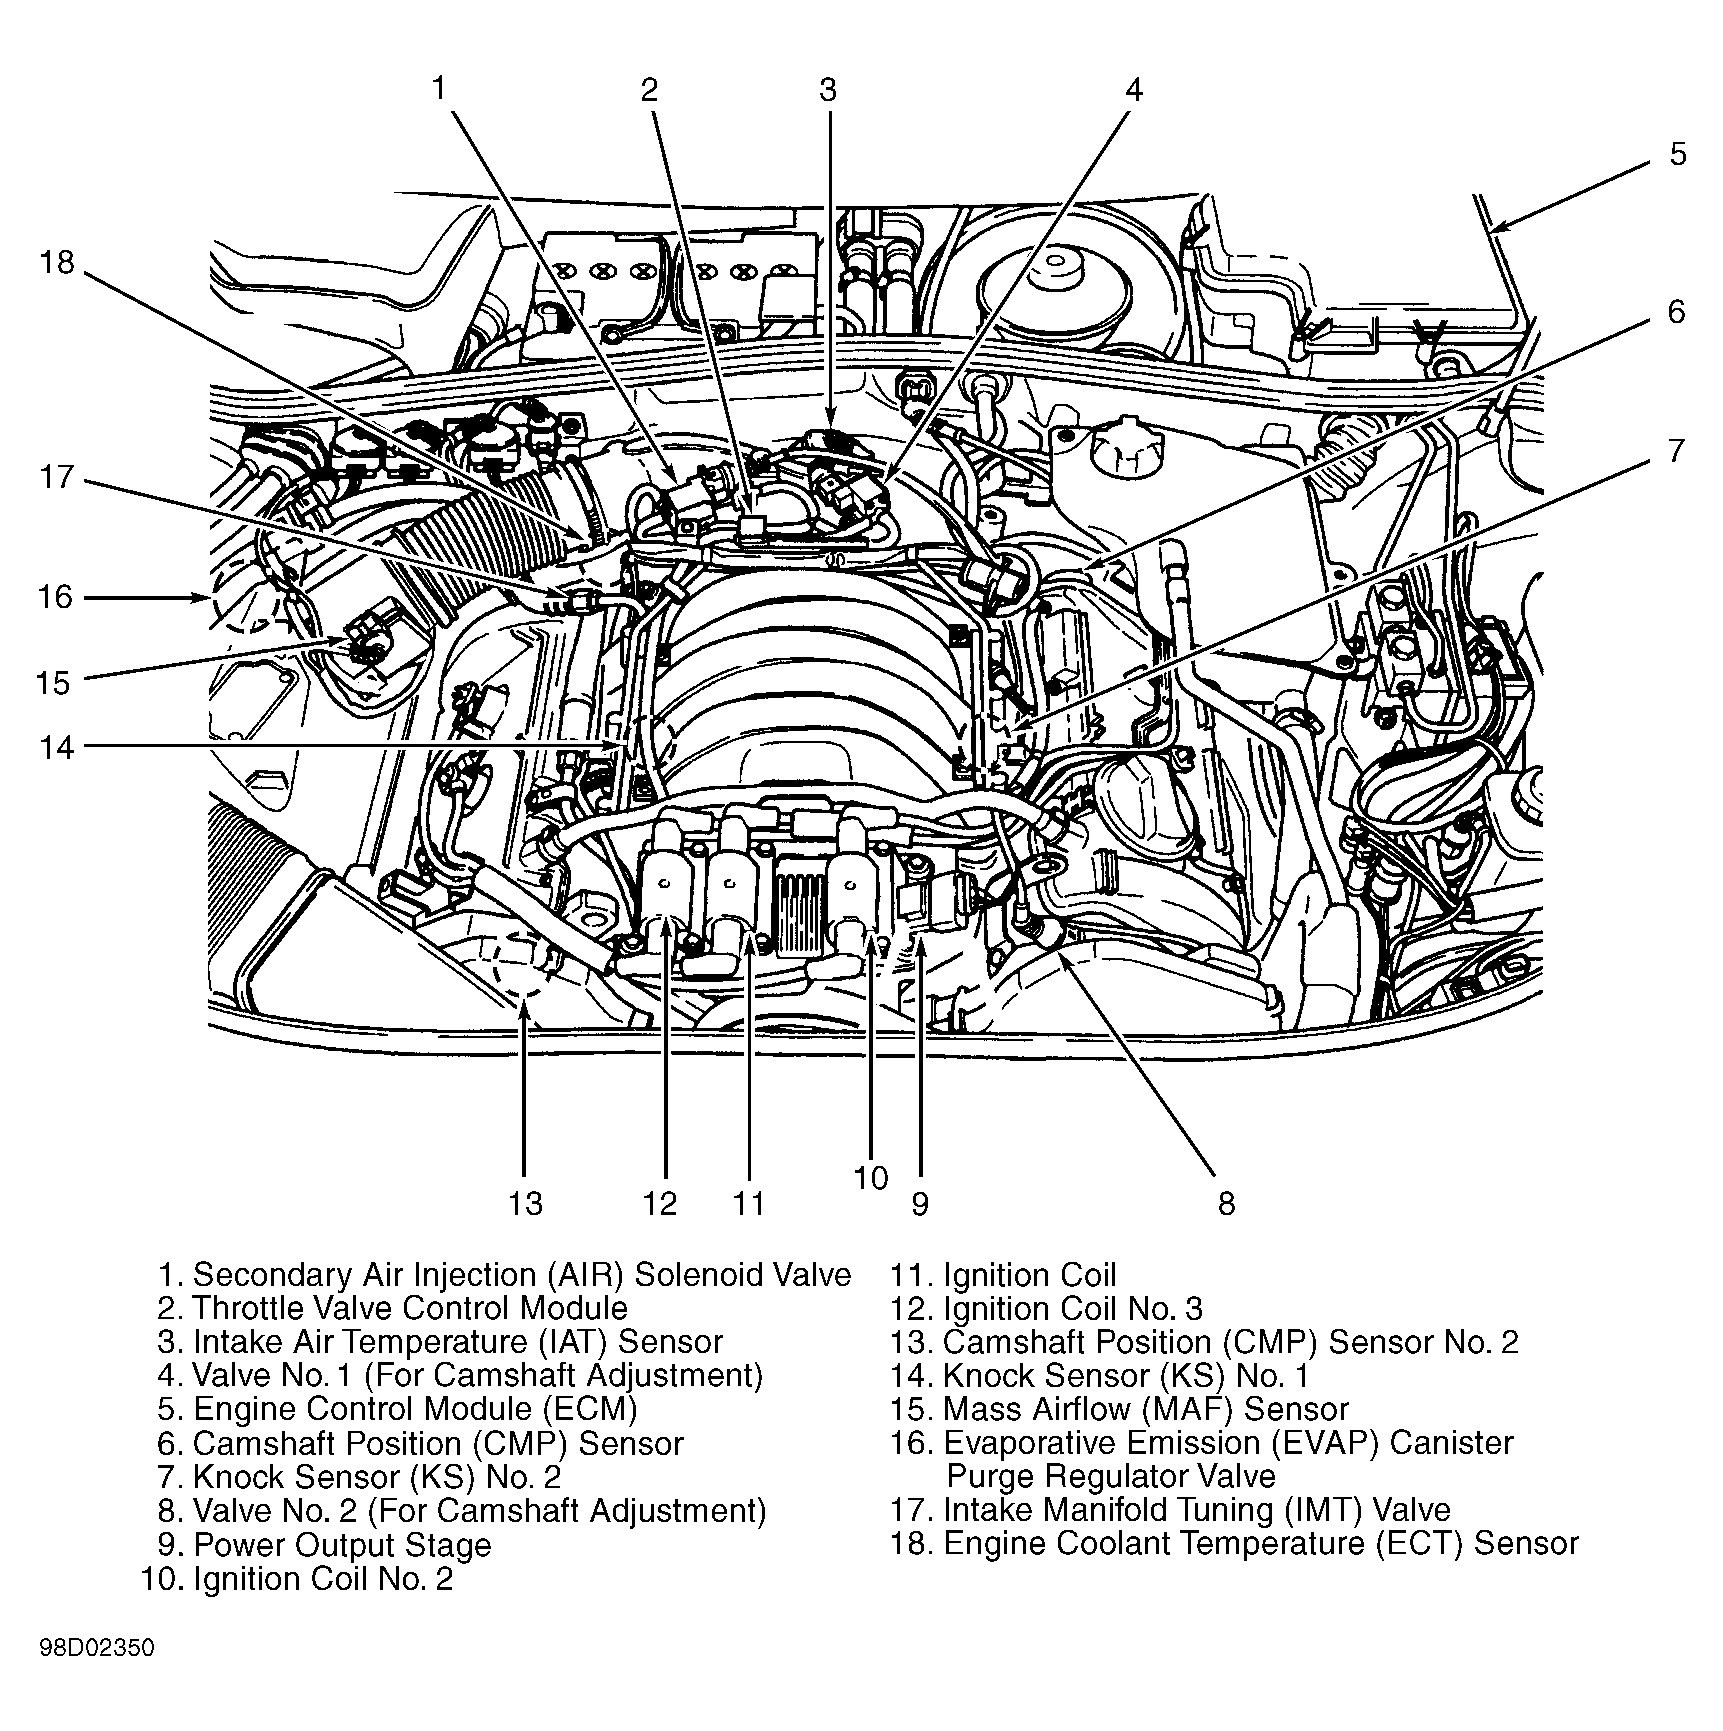 2001 Dodge Ram Evap System Diagram - Wiring Diagram Shw